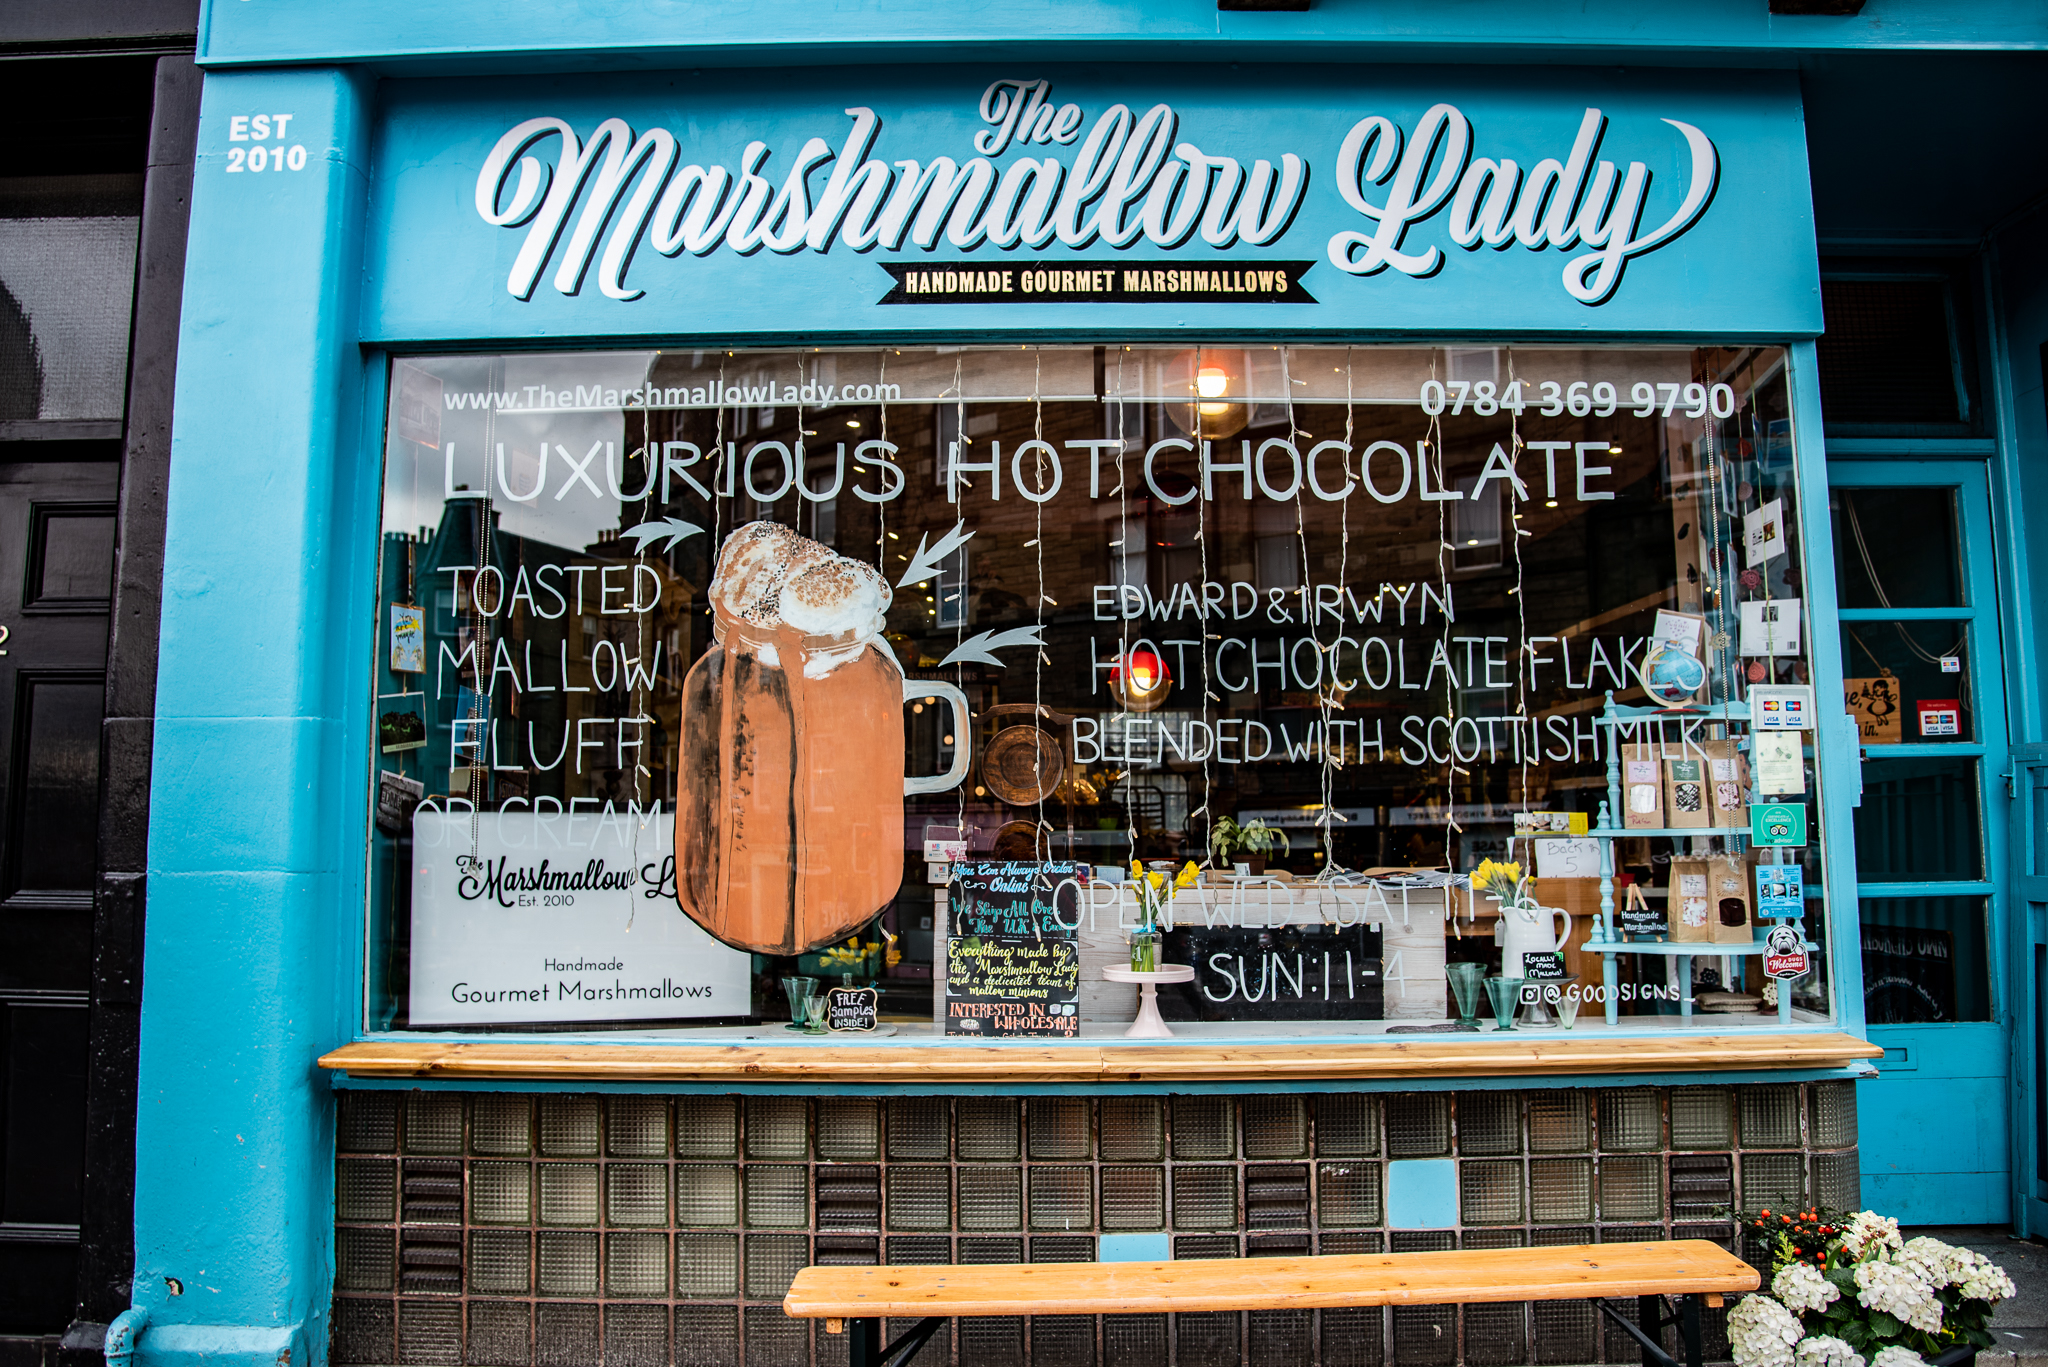 The Marshmallow lady, edinburgh, cafe, restaurant, five of the most instagrammable places in edinburgh